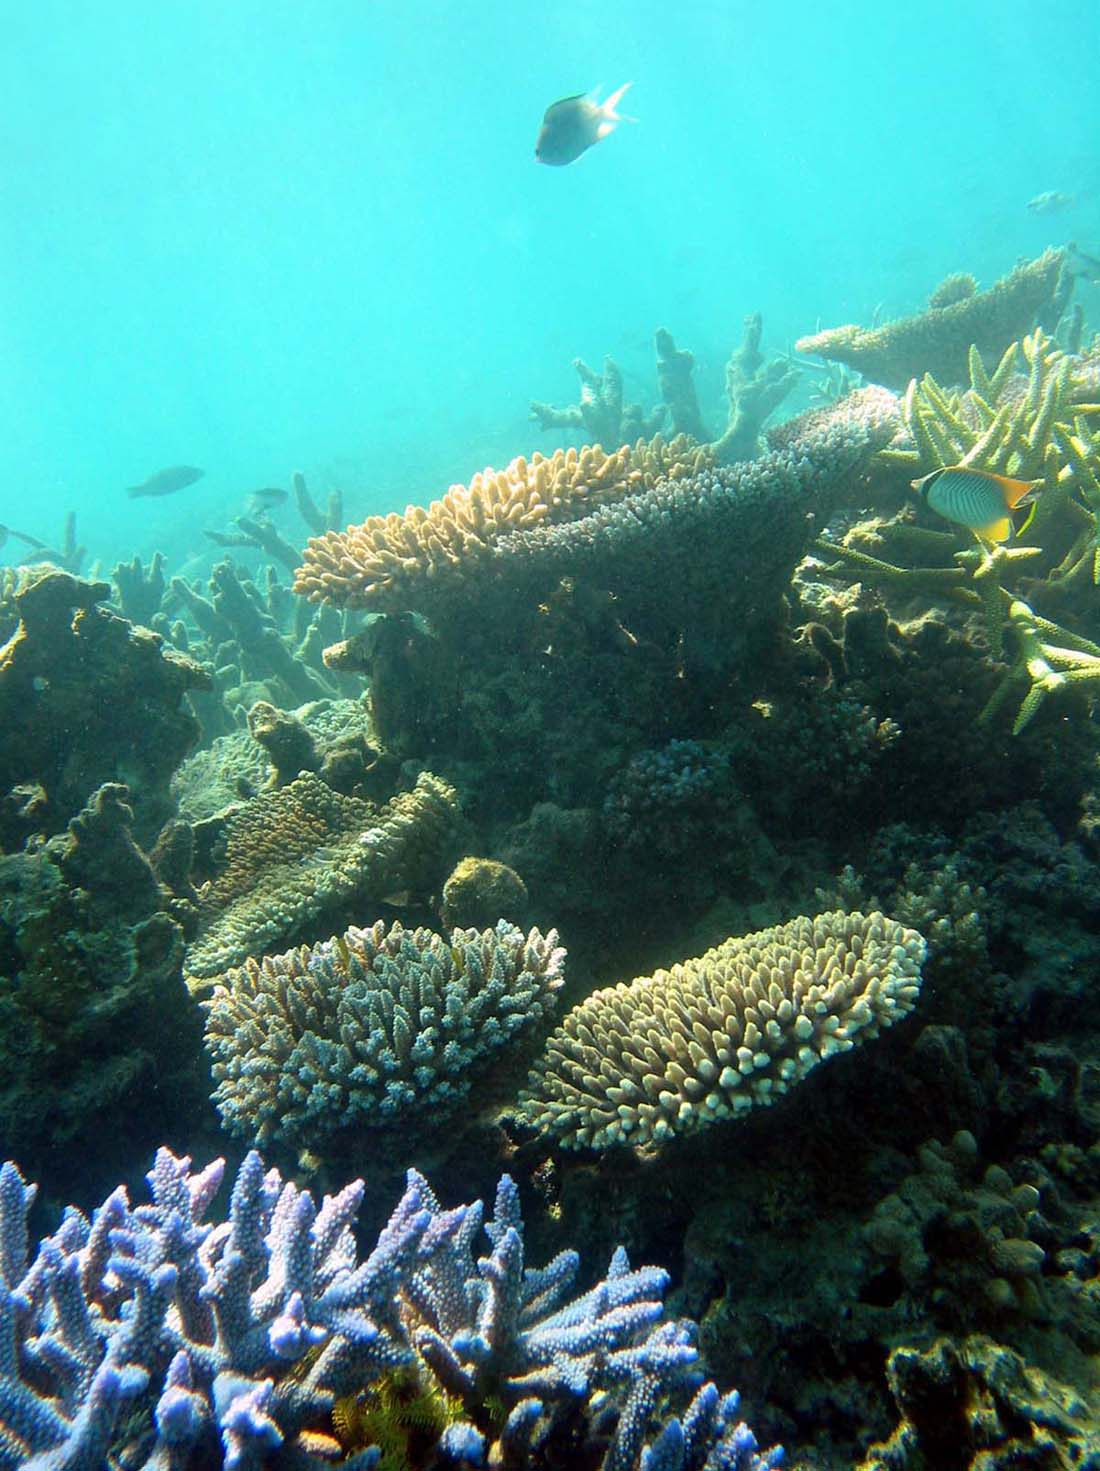 Coral reefs are bleaching due to ocean acidification